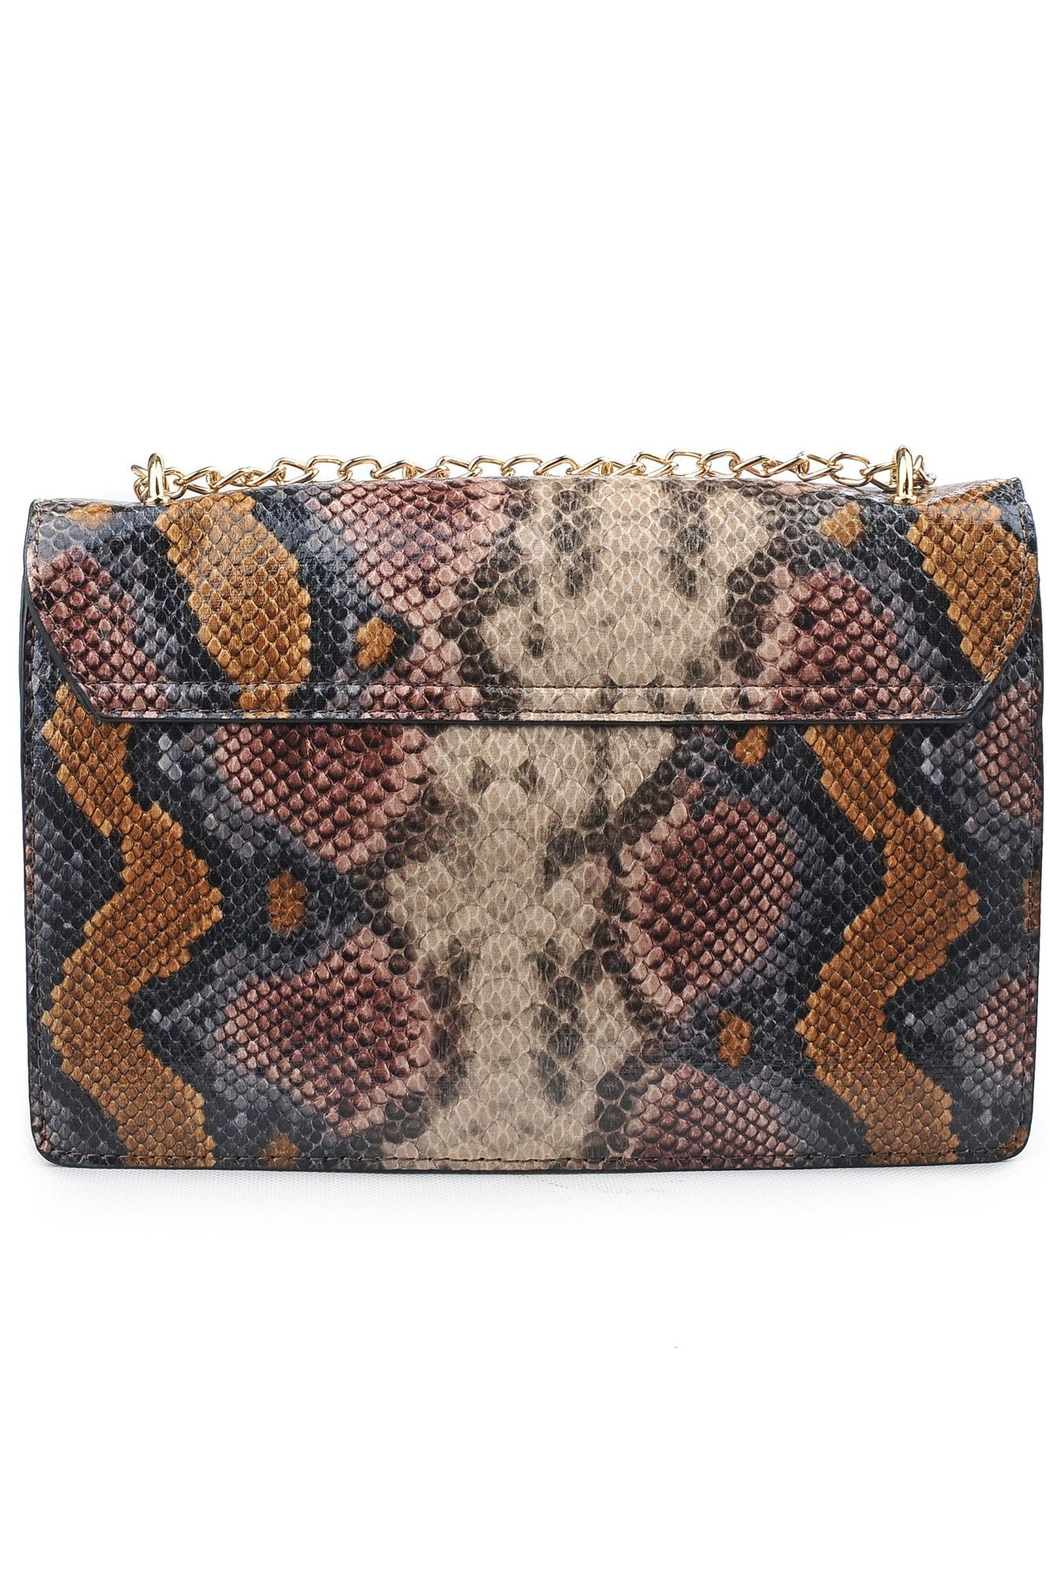 Urban Expressions Adalynn Python Bag - Back Cropped Image